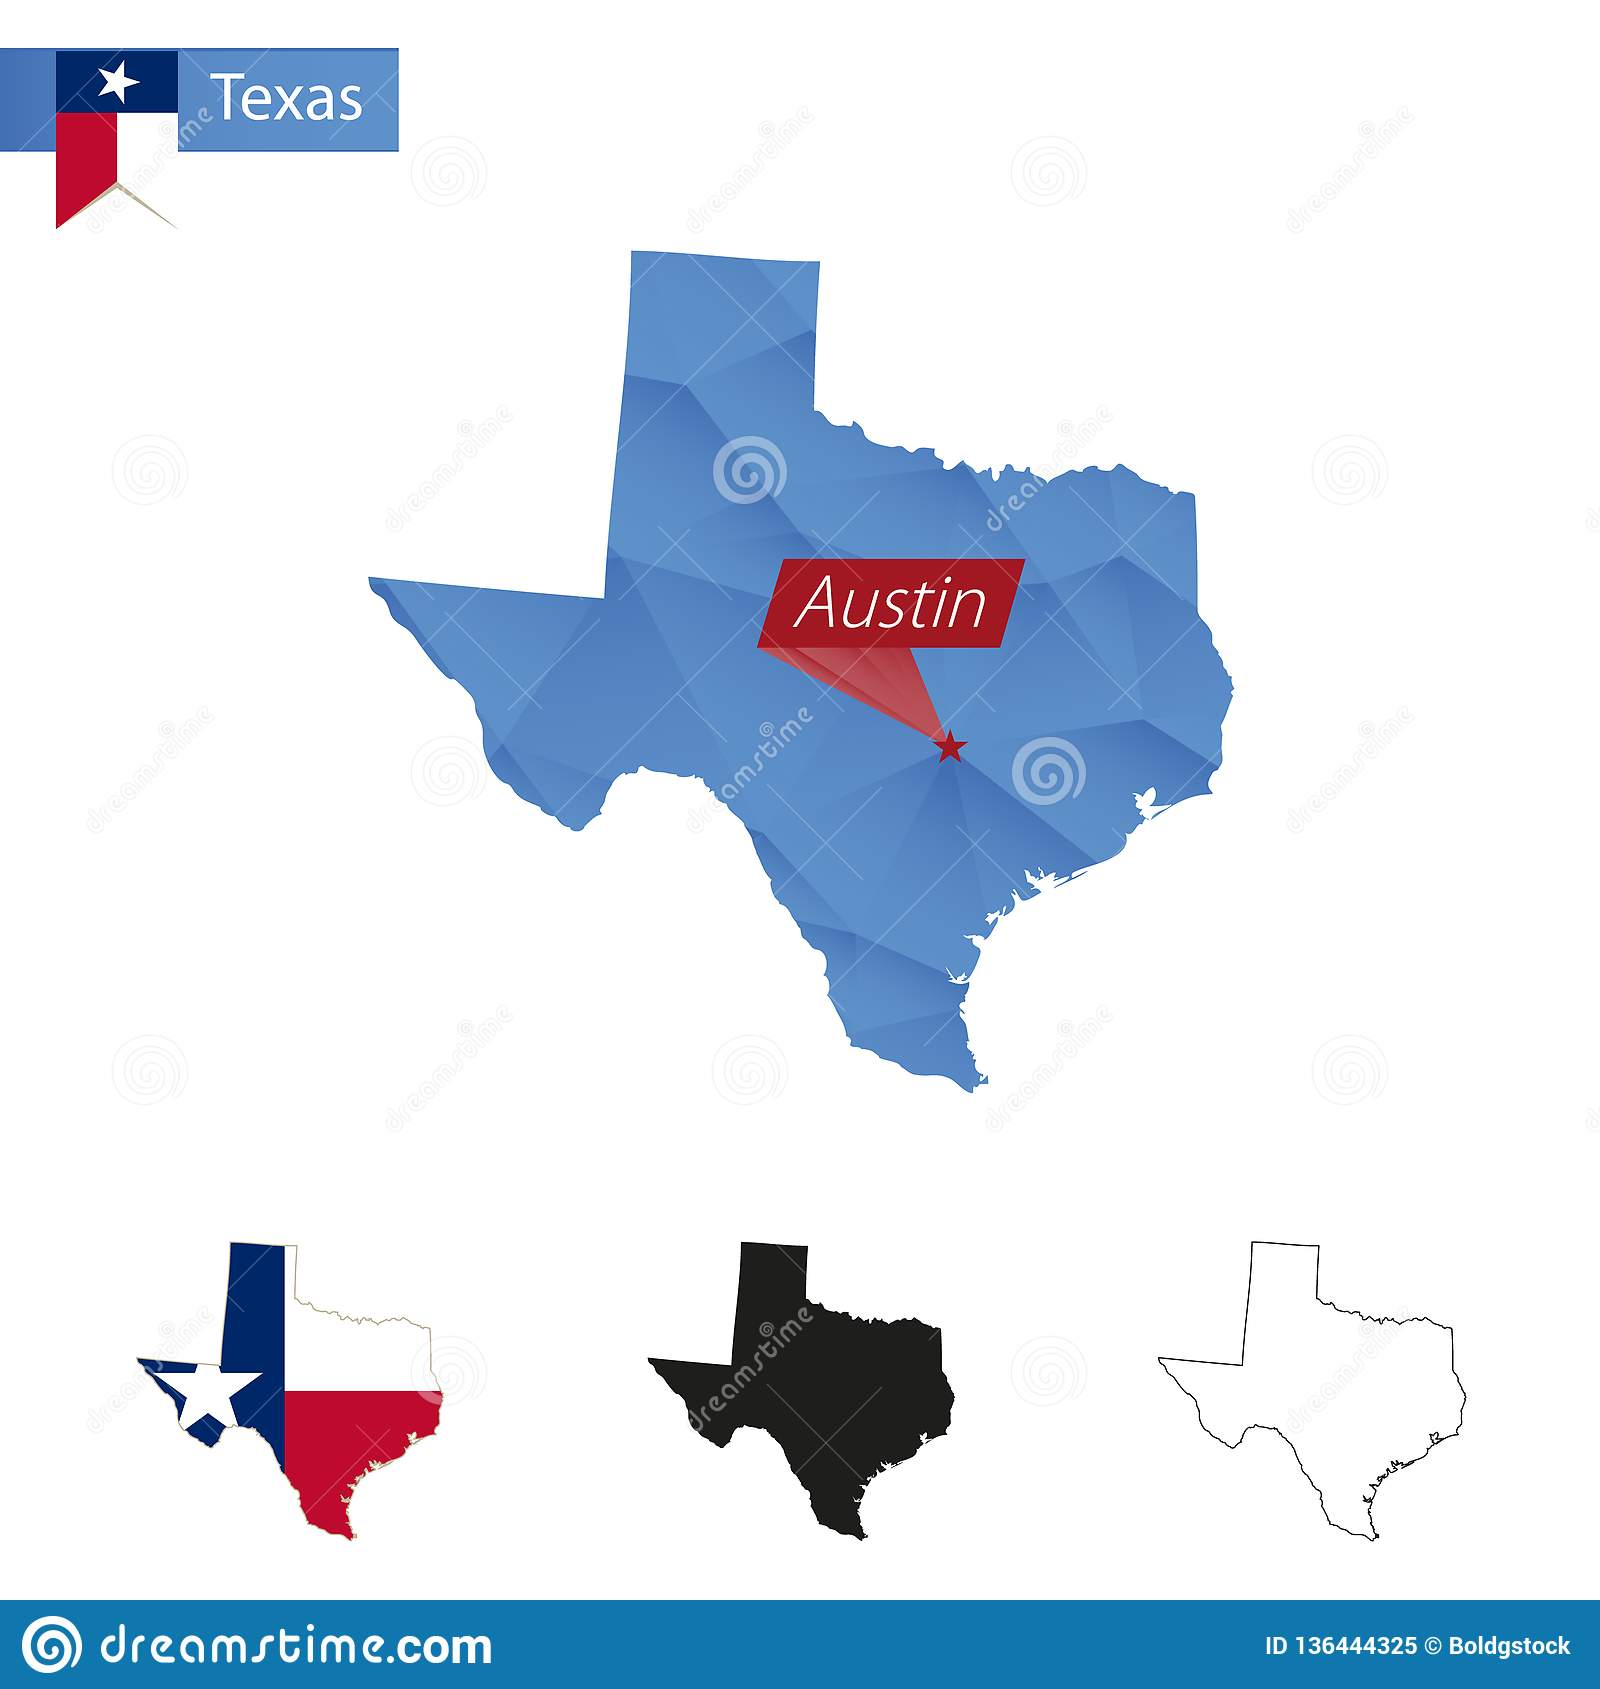 Detail Map Of Texas.State Of Texas Blue Low Poly Map With Capital Austin Stock Vector